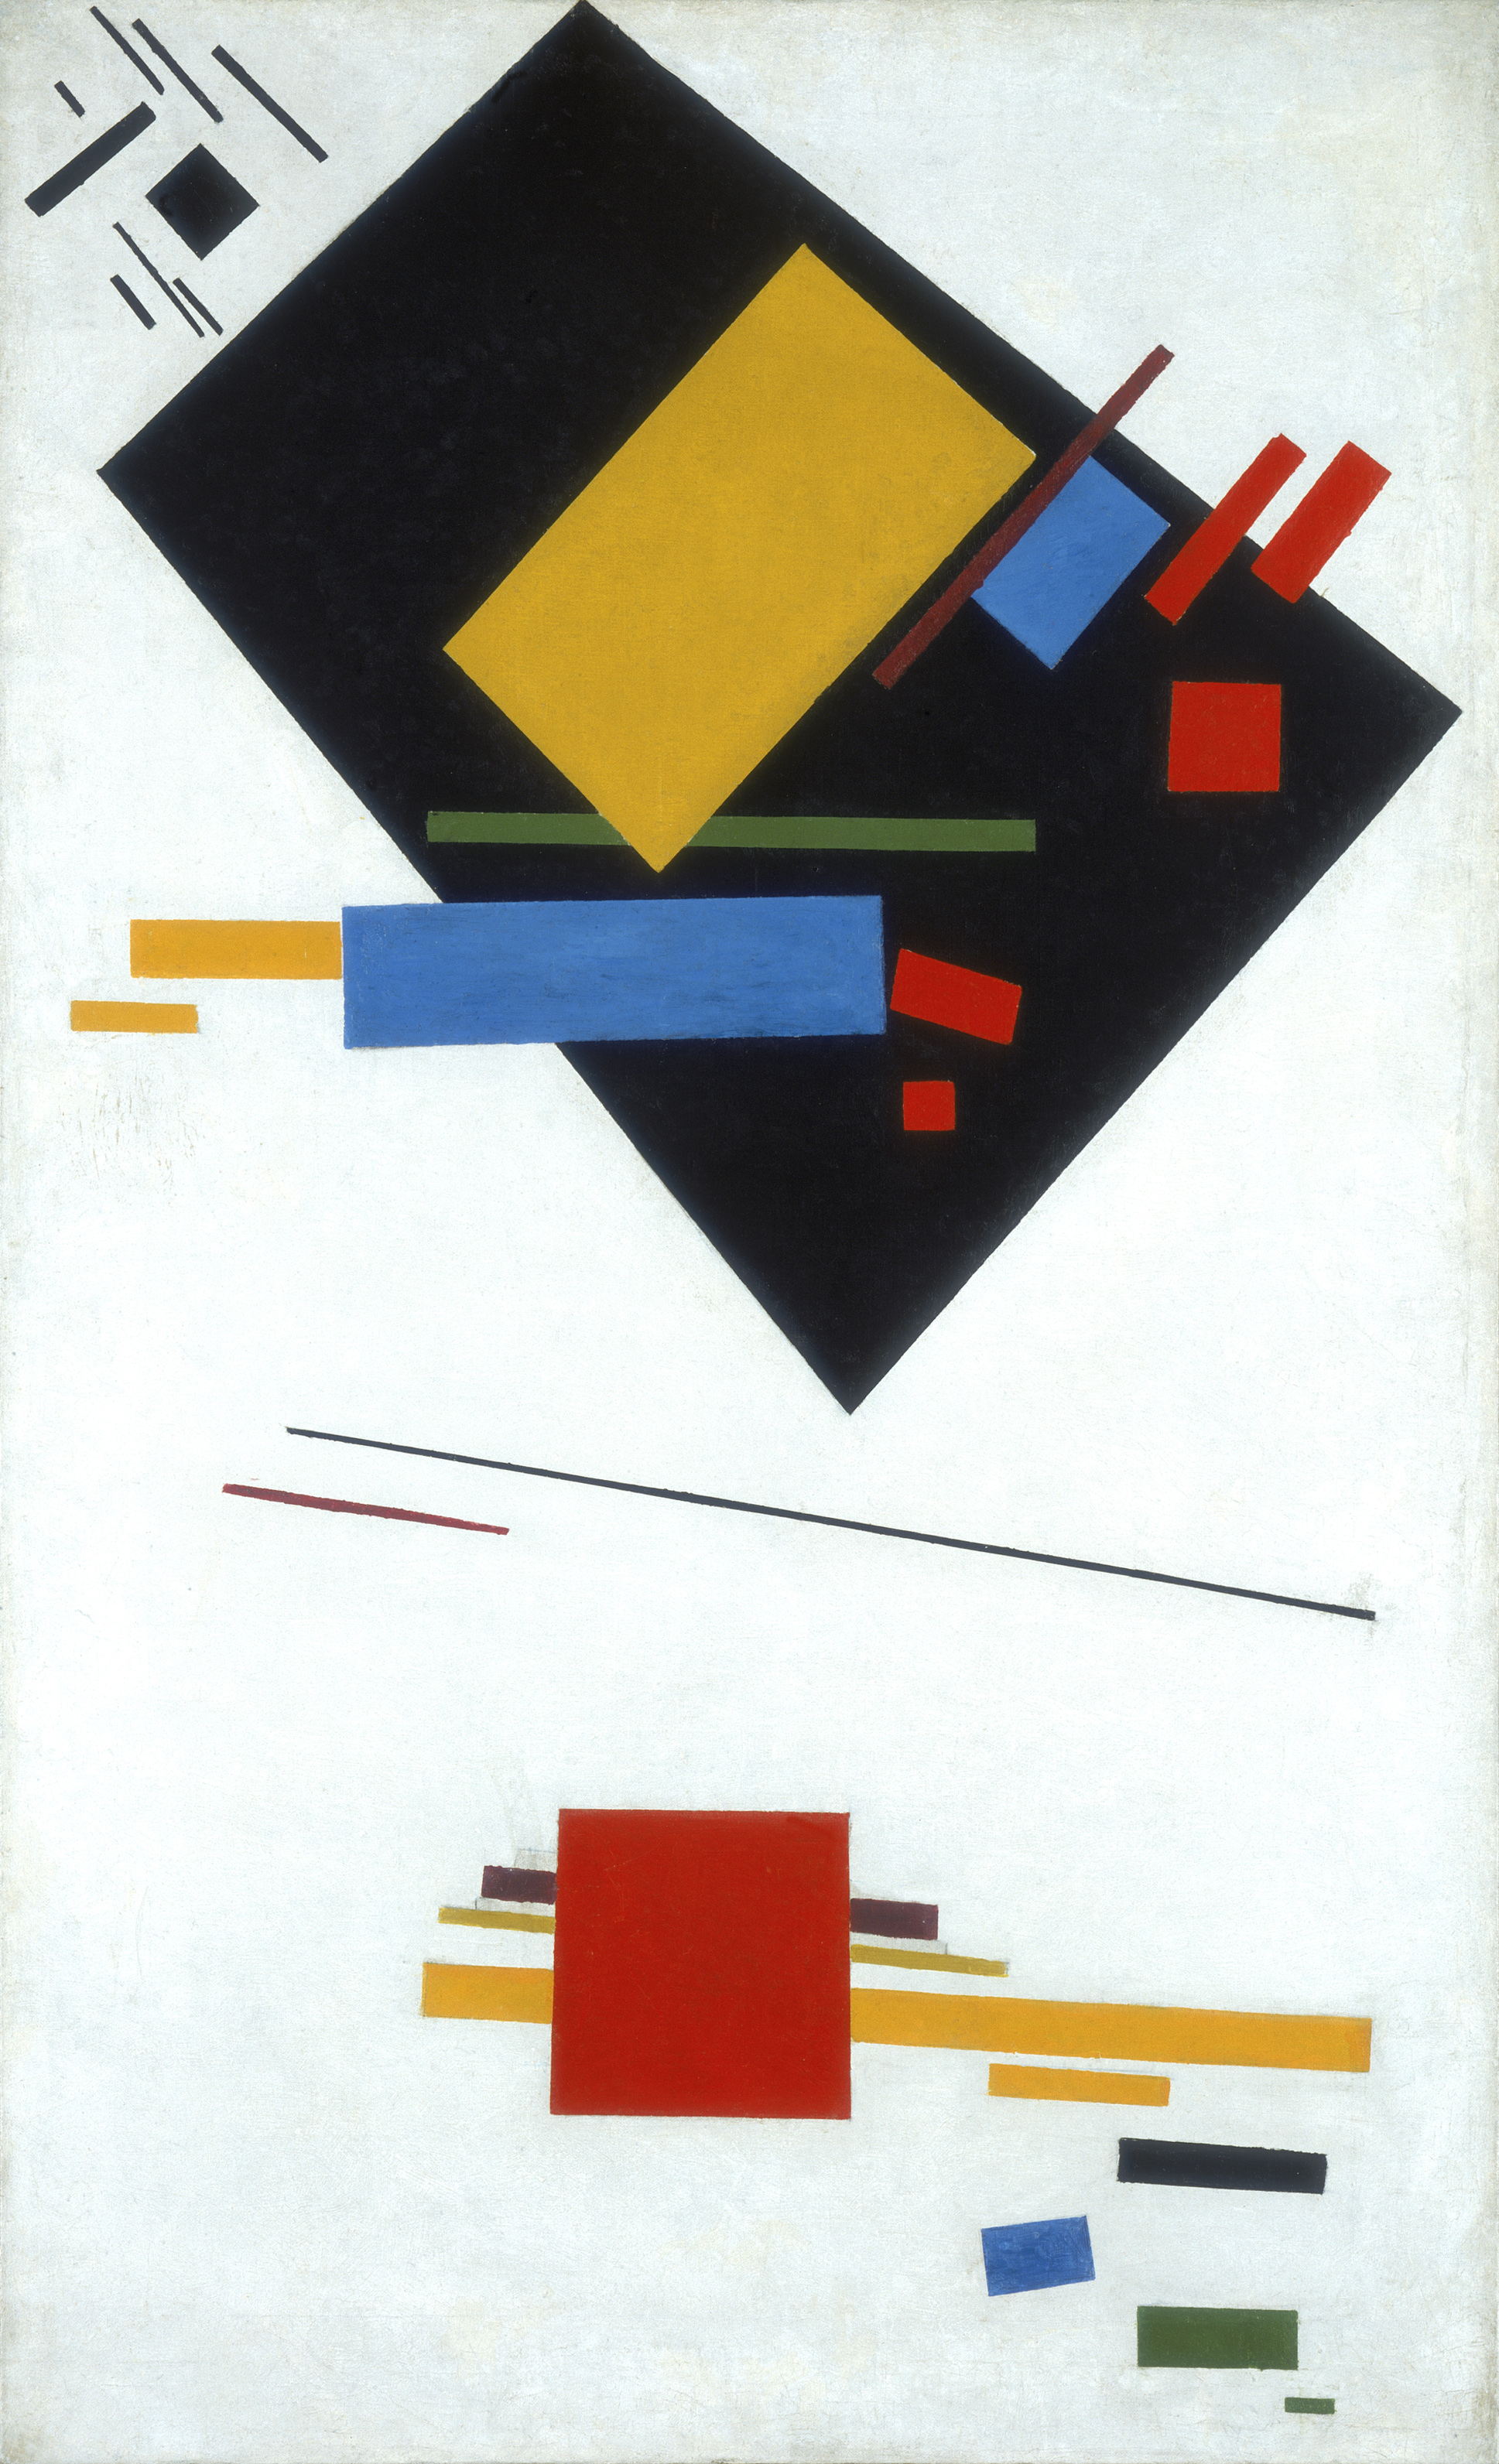 Kazimir Malevich, Suprematist Painting (with Black Trapezium and Red Square) 1915, Tate Modern